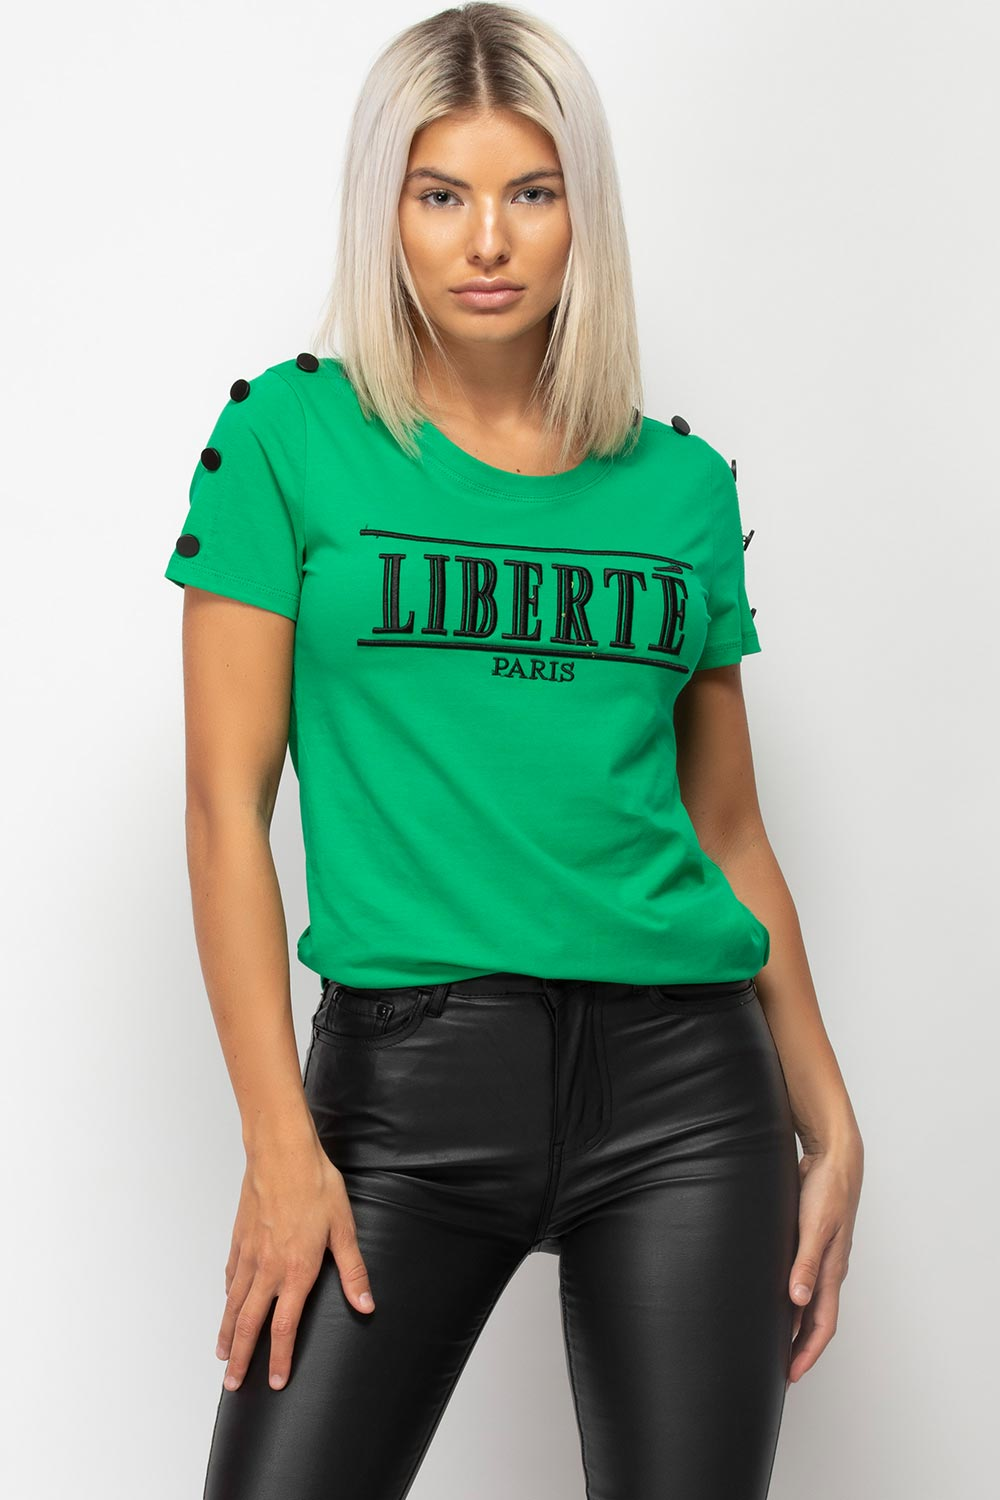 liberte paris womens t shirt